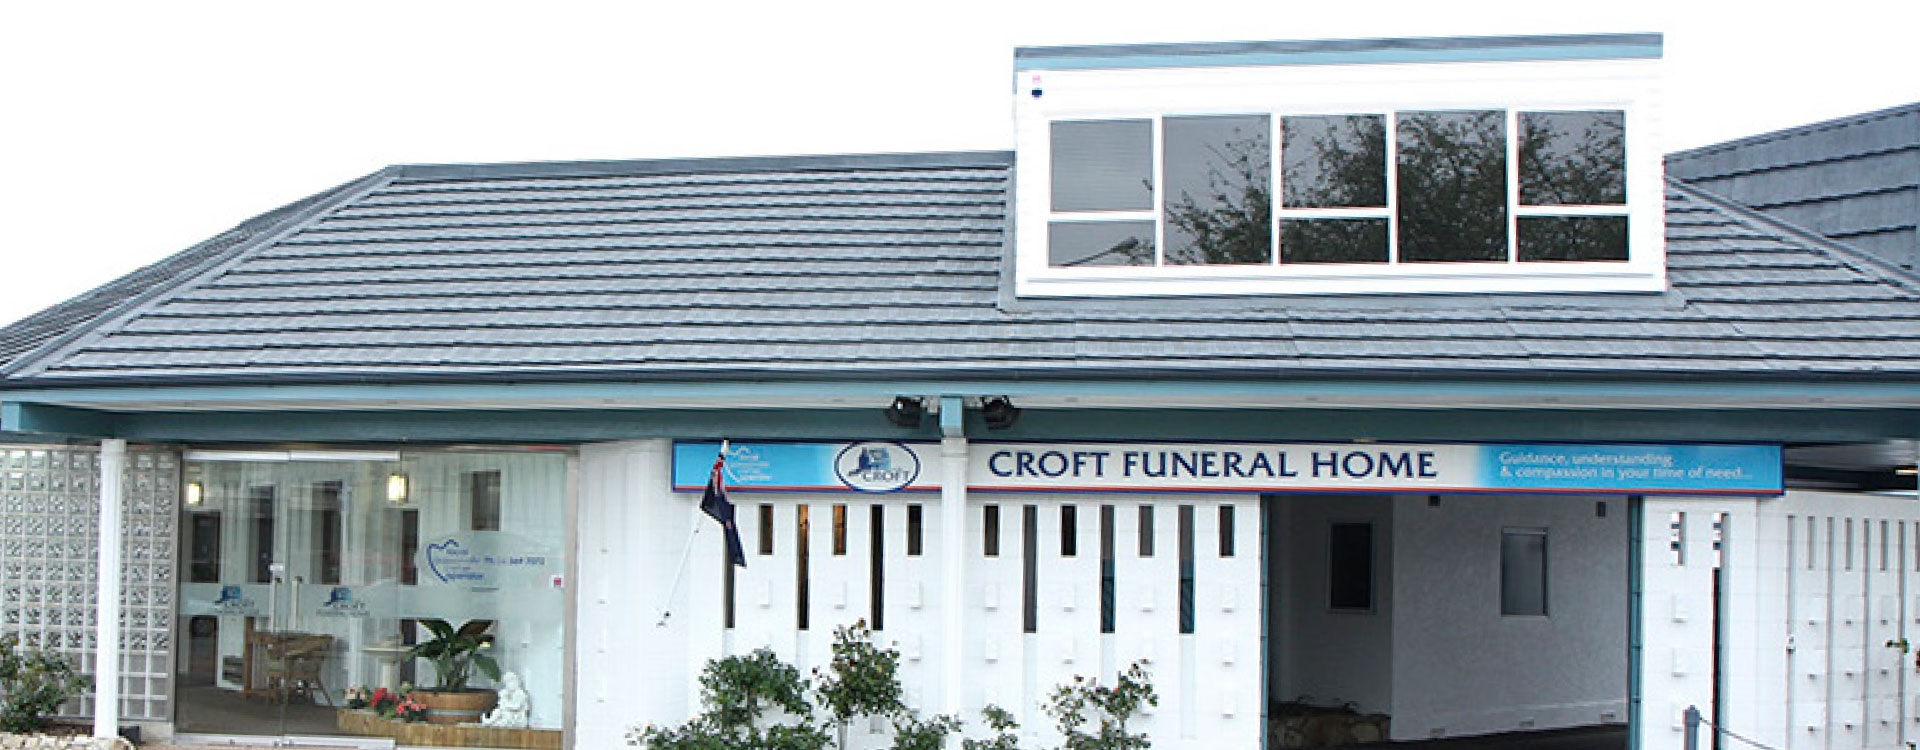 Croft Funeral Services Building